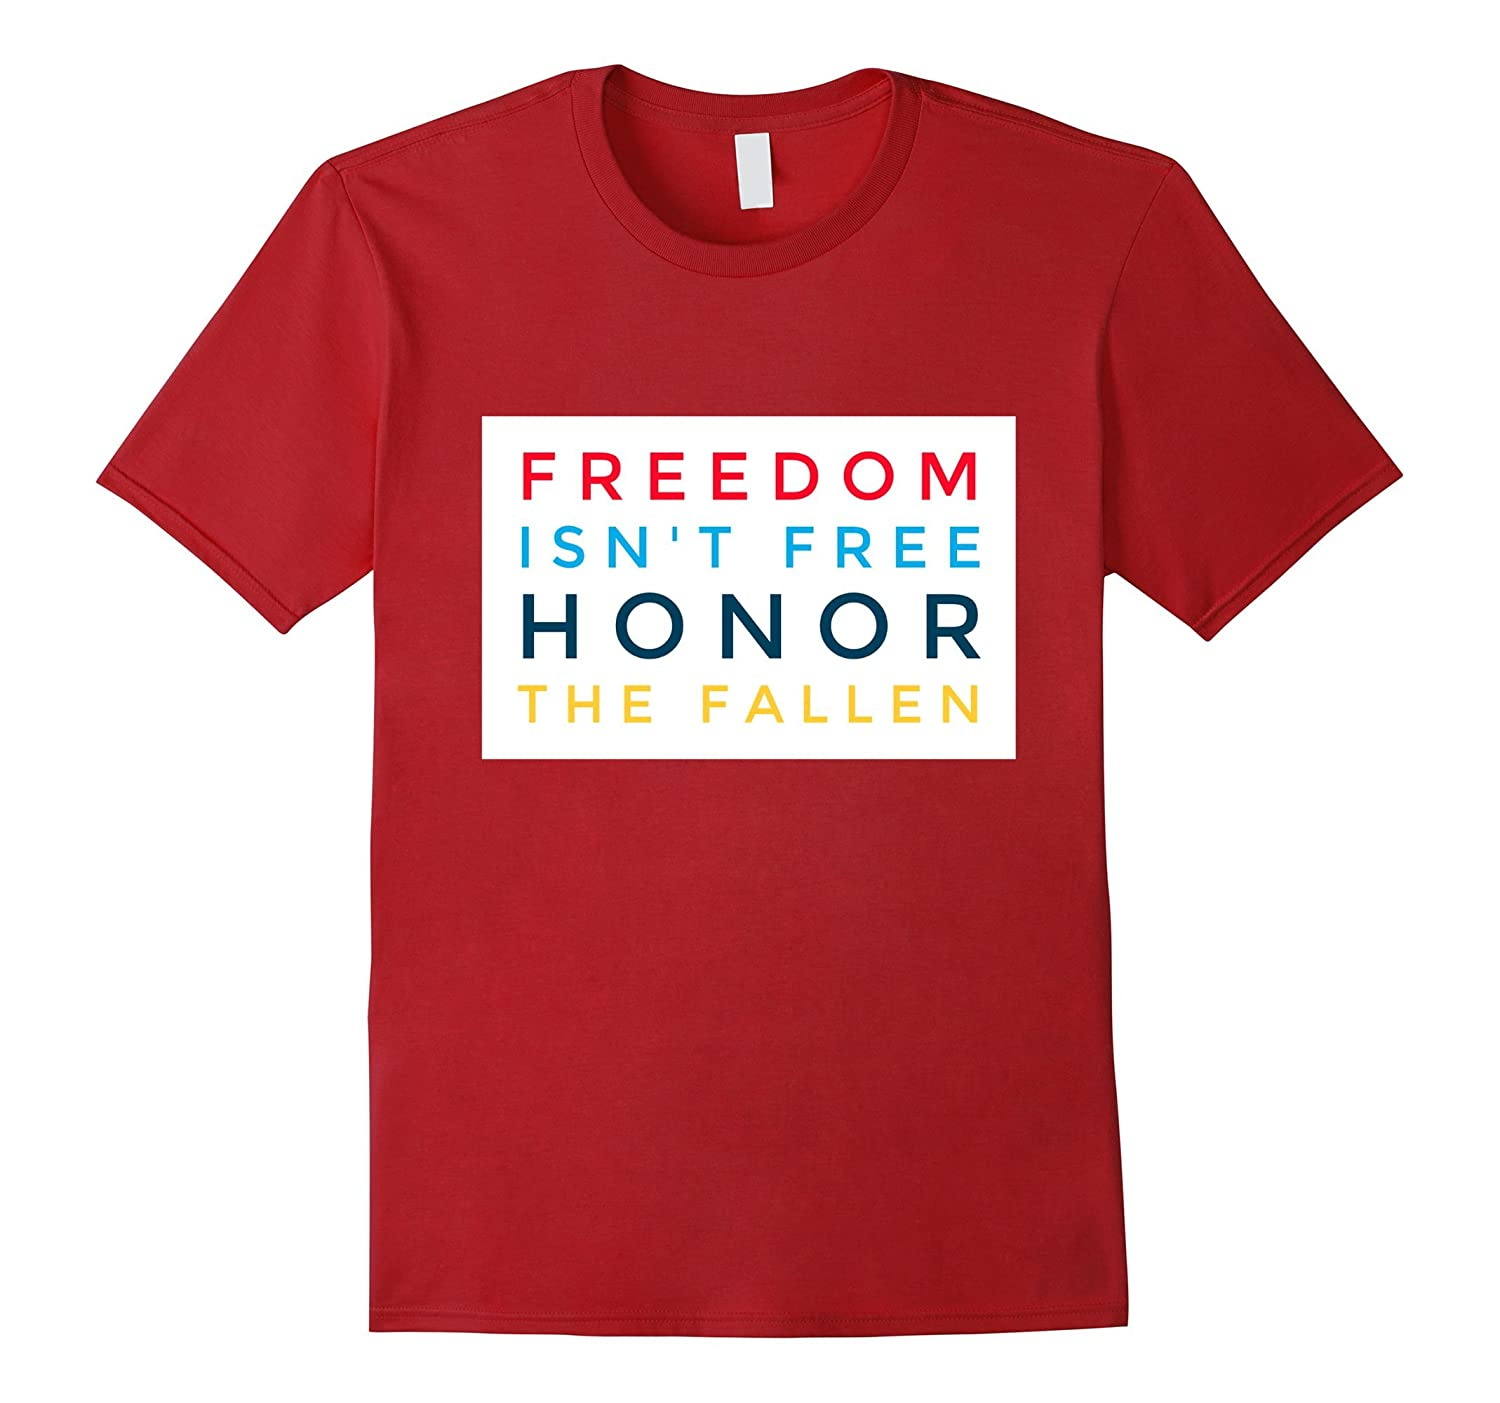 Freedom isn't free honor courage sacrifice soldiers t-shirt